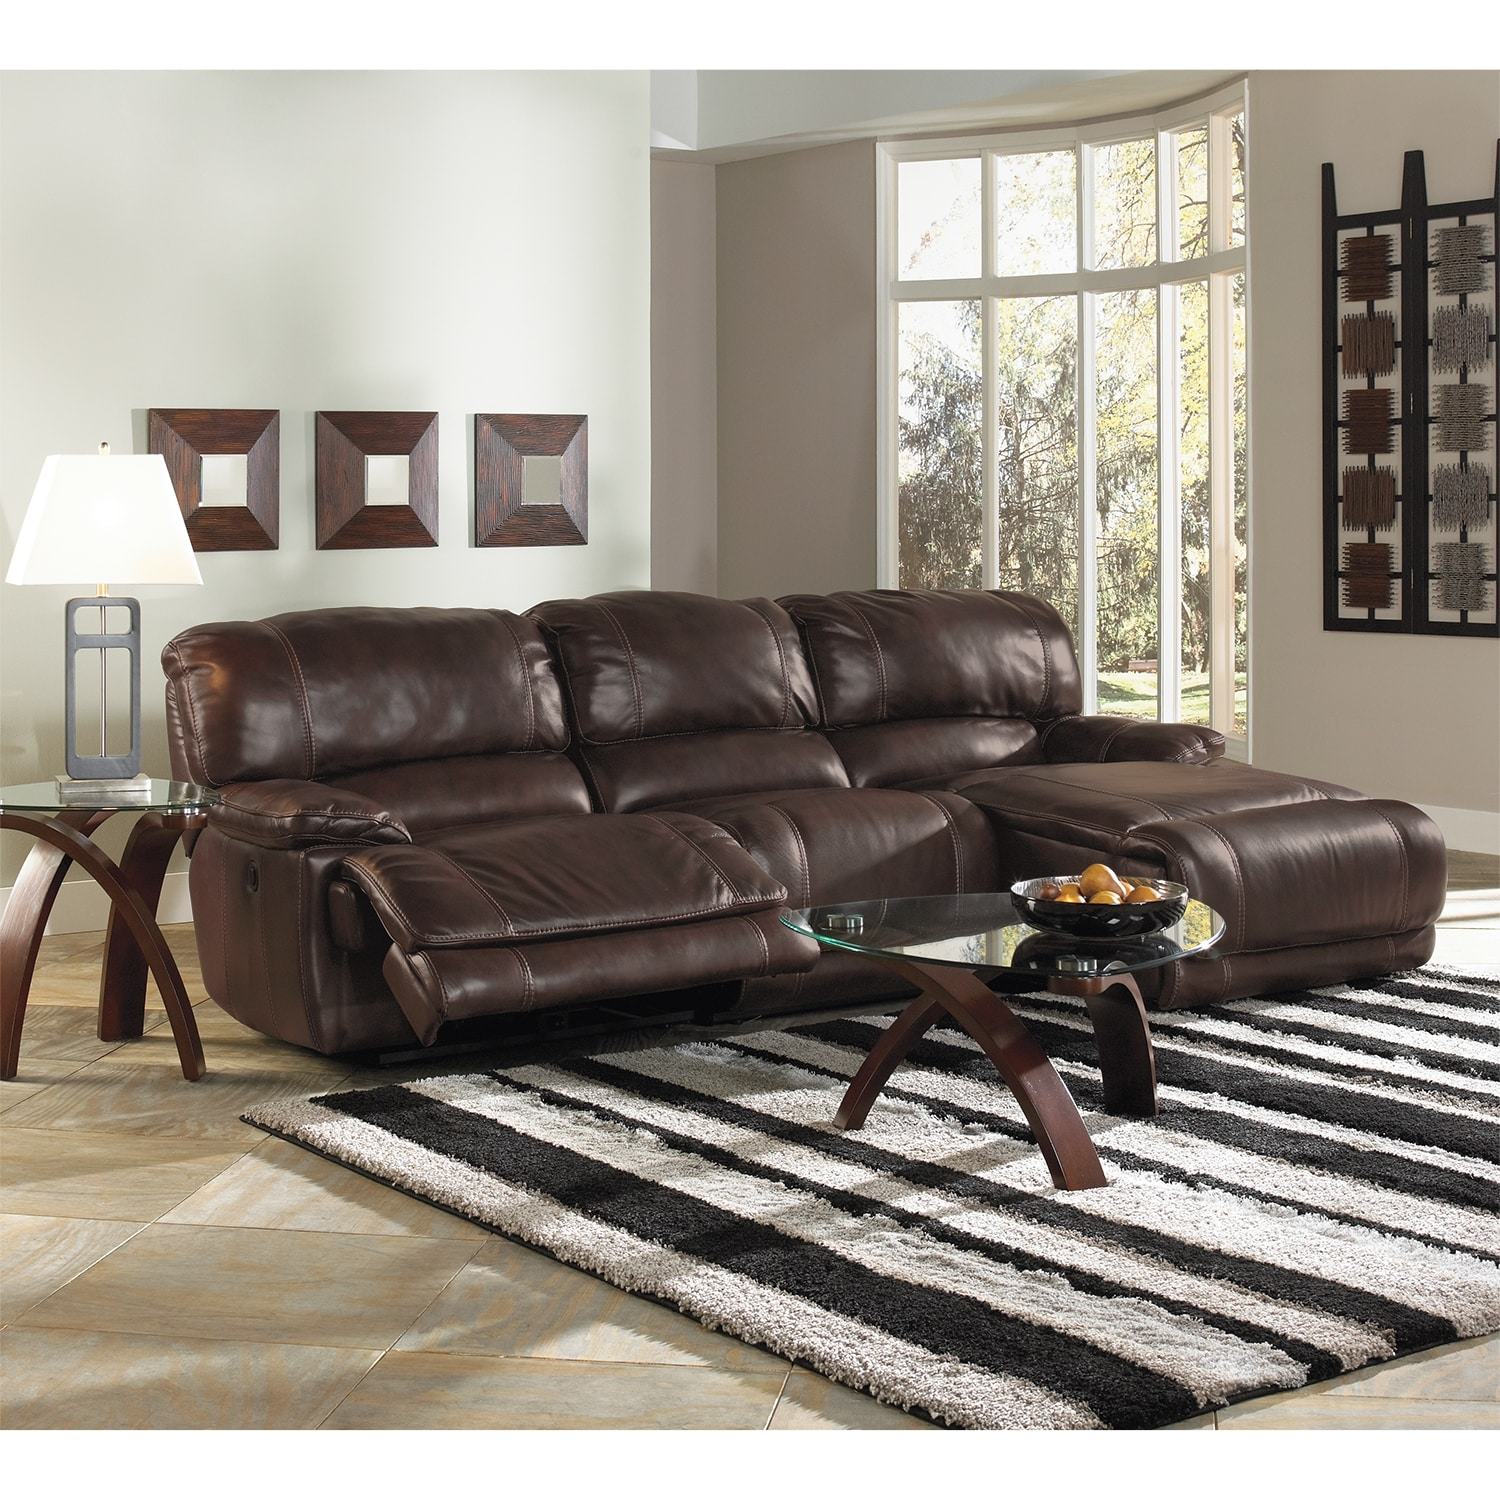 Click to change image. & St. Malo 3-Piece Power Reclining Sectional with Right-Facing ... islam-shia.org